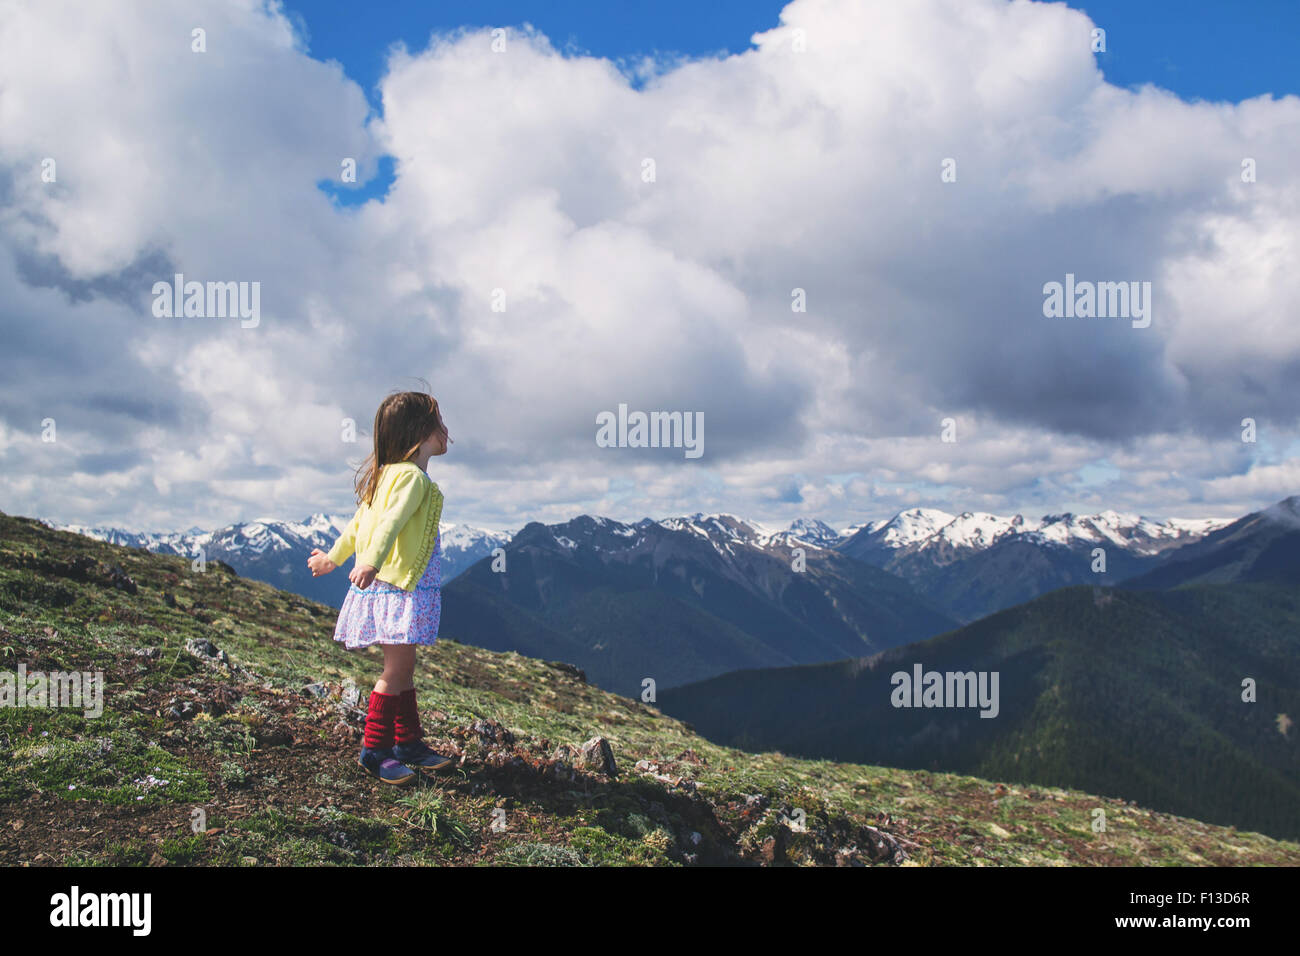 Little girl standing on mountain with arms outstretched - Stock Image